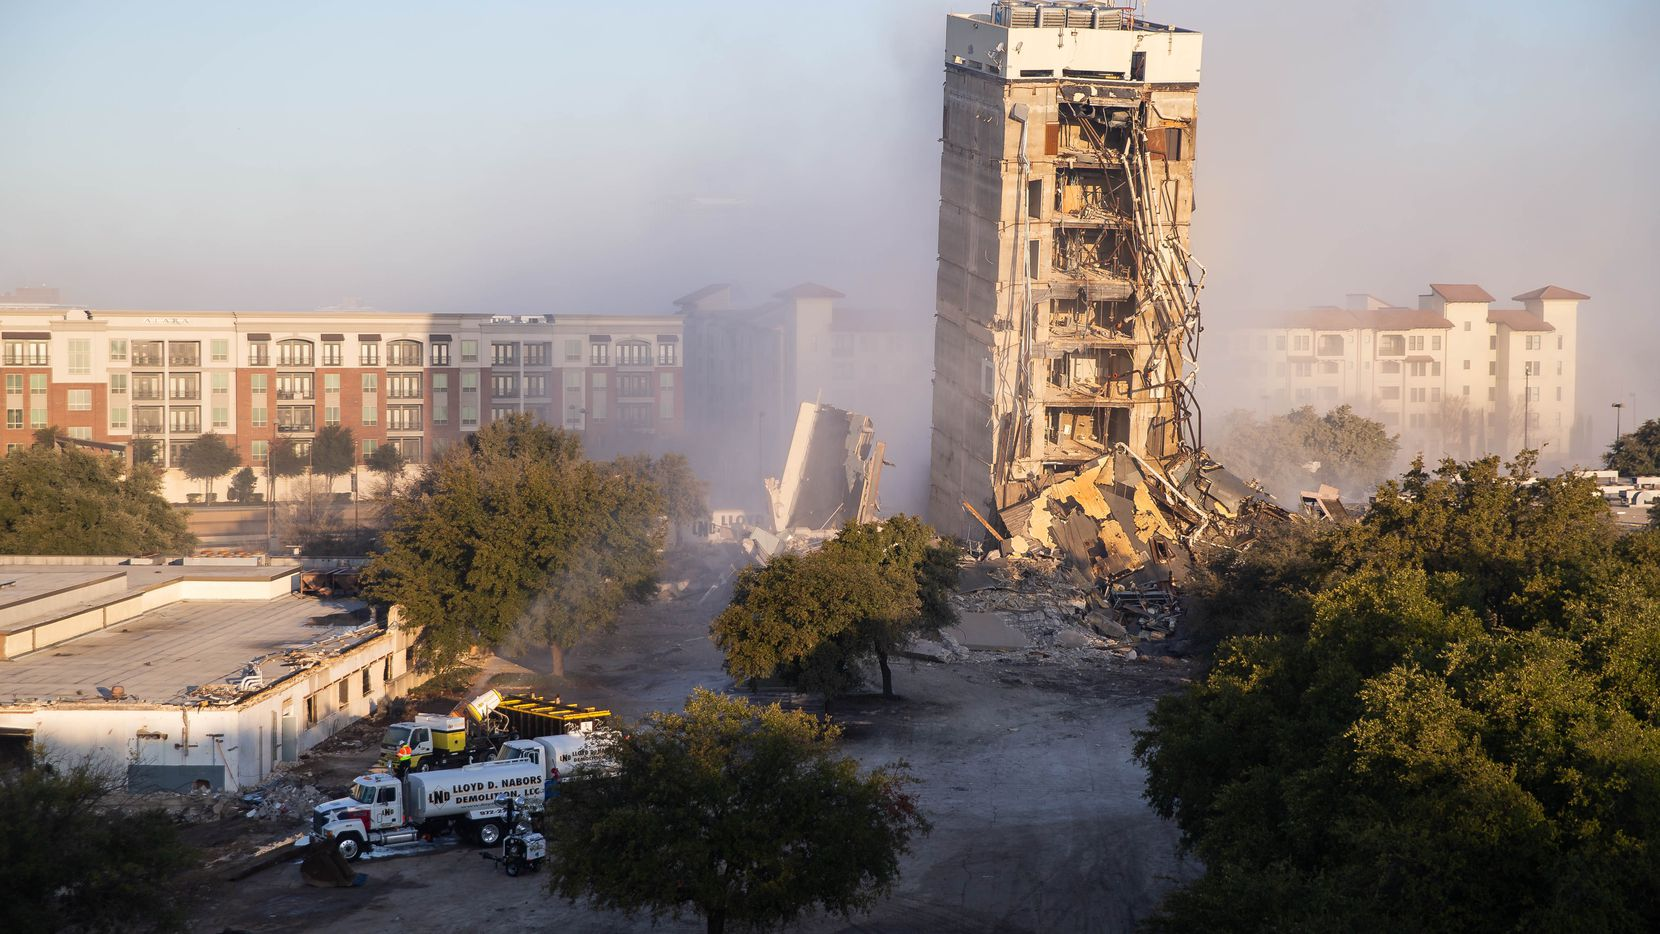 Part of the 11-story former Affiliated Affiliated Computer Services tower remains standing after an implosion attempt north of downtown Dallas on Feb. 16, 2019. (Juan Figueroa/The Dallas Morning News)